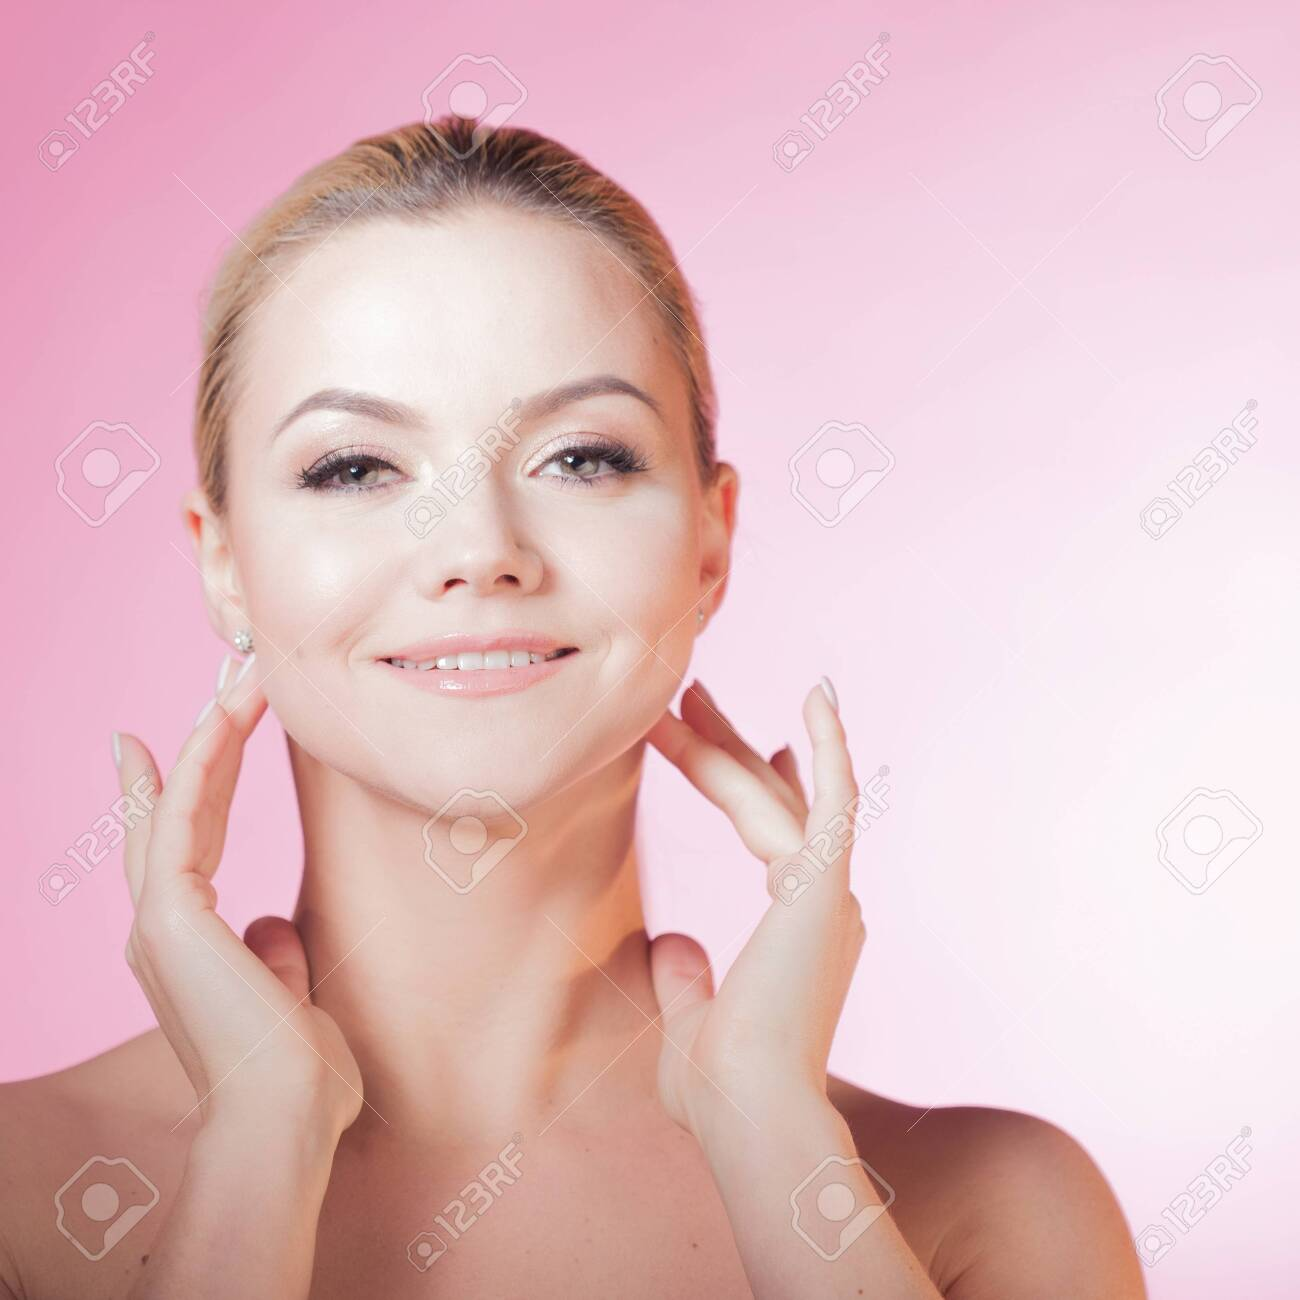 Face care and skin care, health and beauty concept, copy space. Happy young woman smiling, healthy skin and minimum makeup, naturalness and beauty. Charming blonde girl on pink background - 129383927